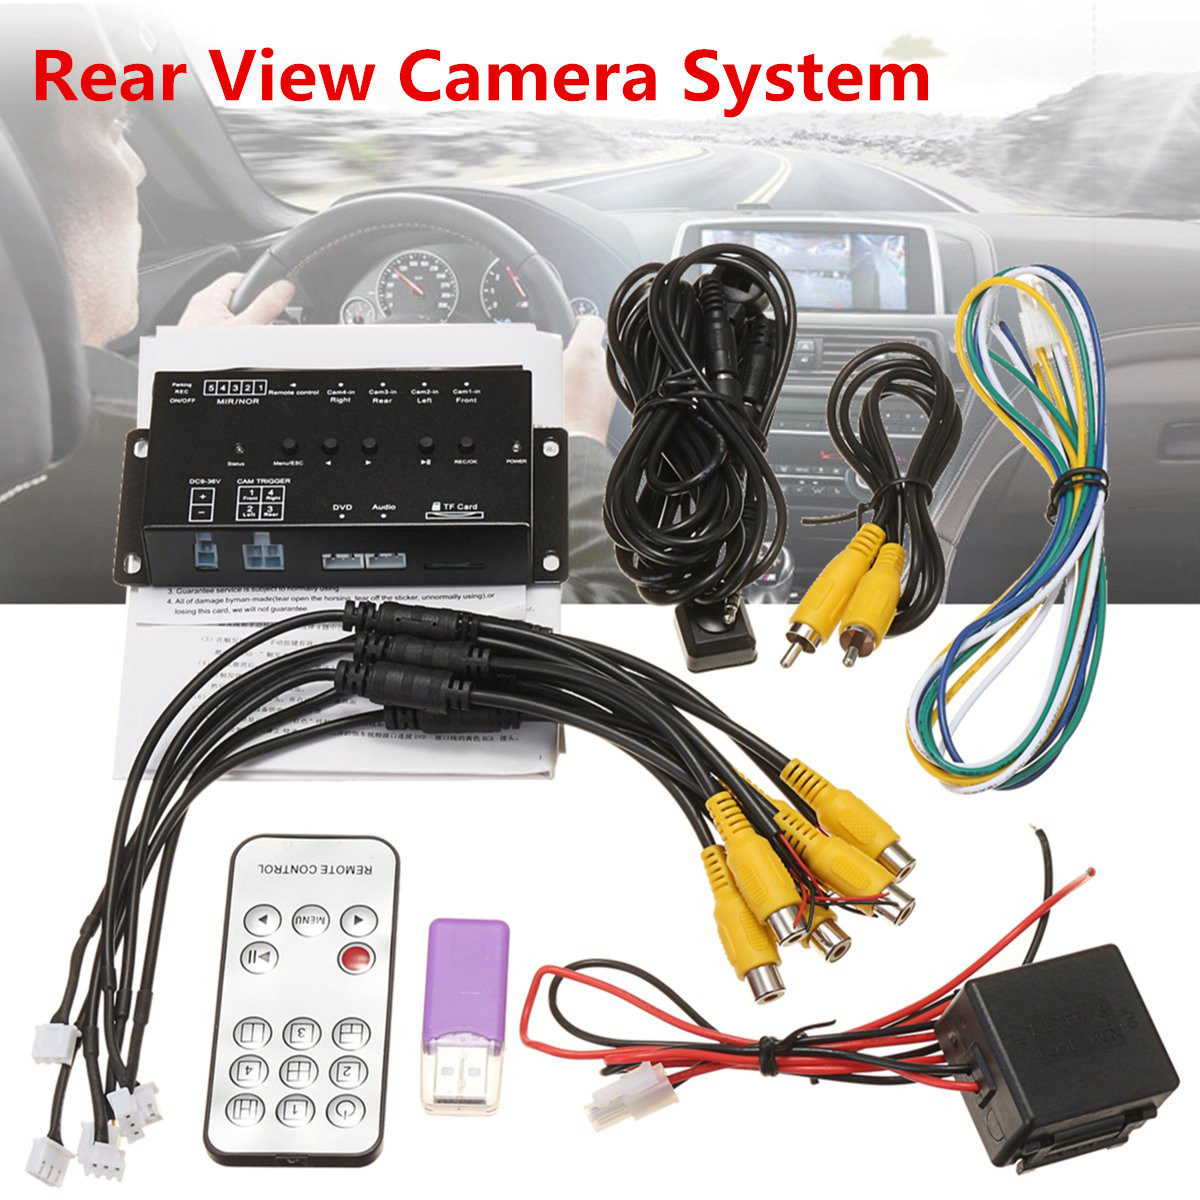 360 degree dc 12v car suv dvr record panoramic view all round rear view camera system. Black Bedroom Furniture Sets. Home Design Ideas